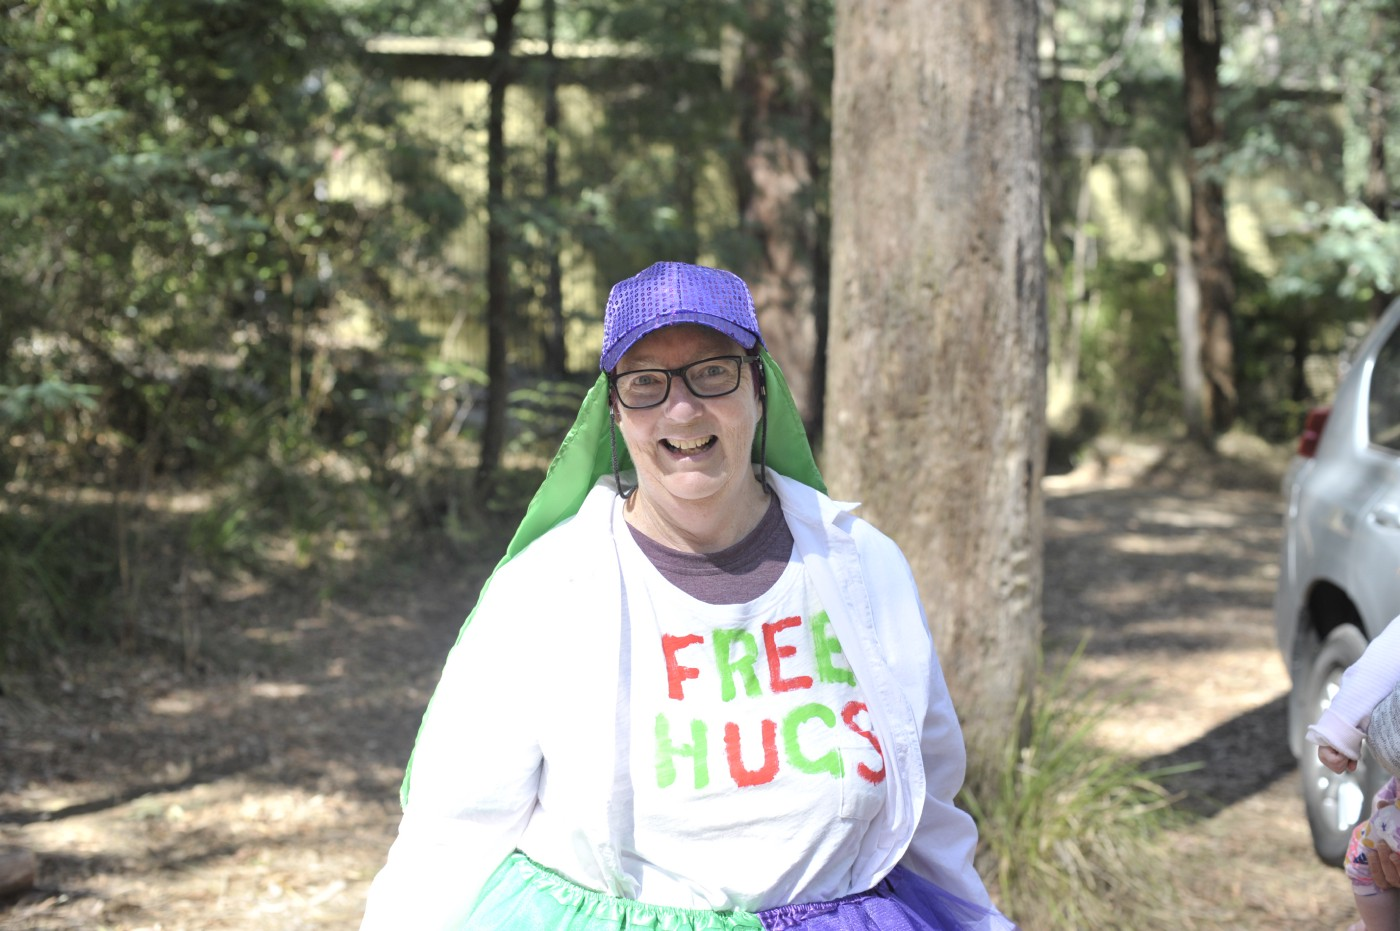 A woman in a purple sparkly hat and black-framed glasses smiles at the camera. She wears a white t-shirt that says FREE HUGS.